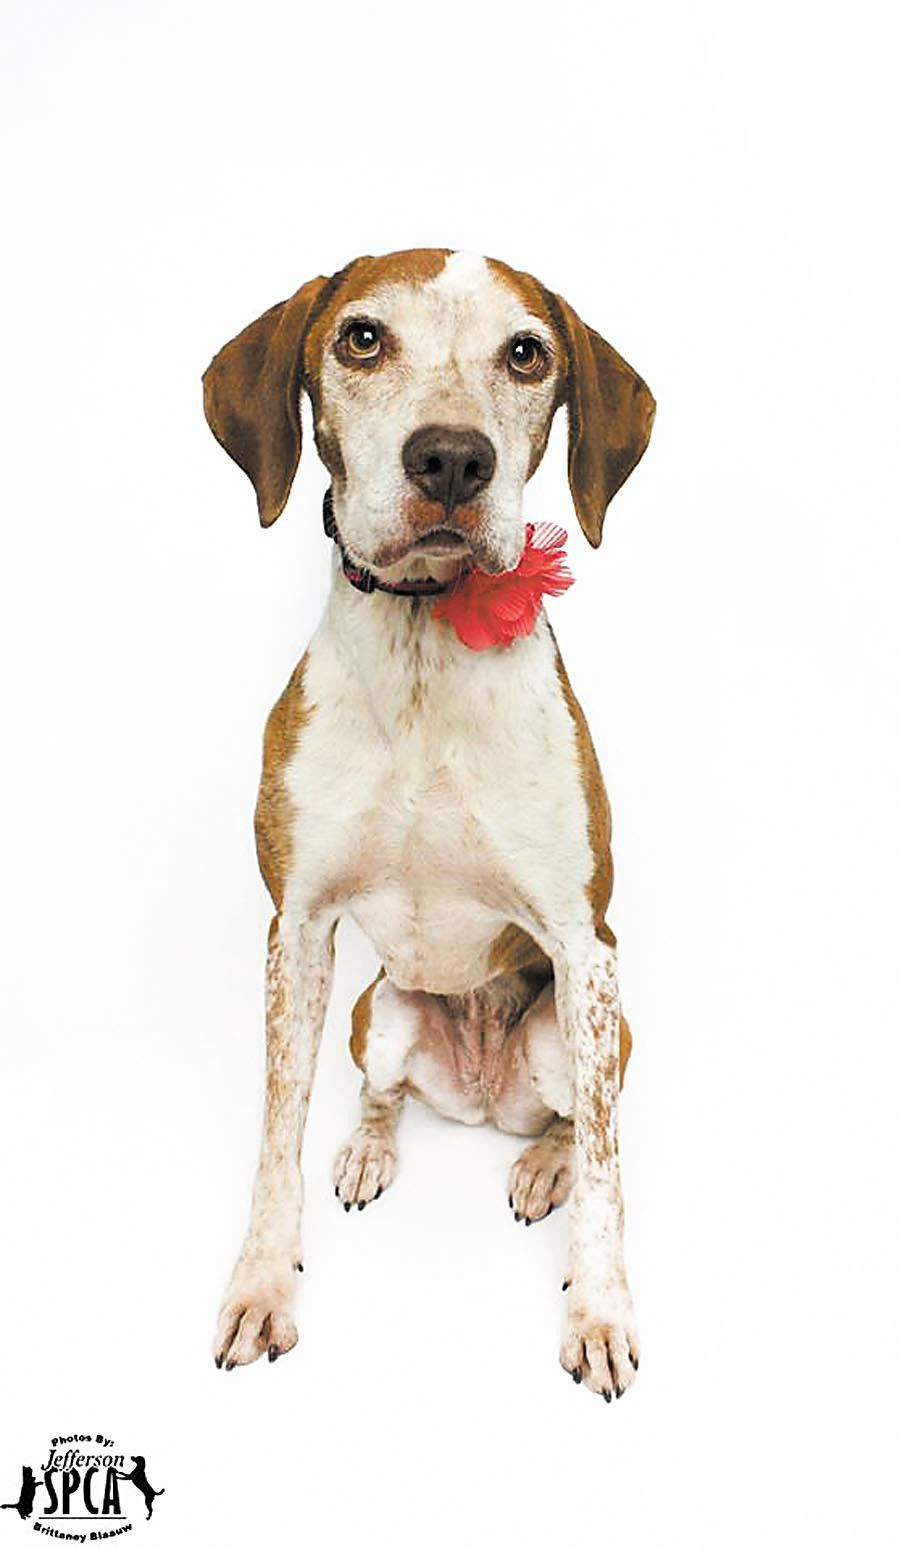 17 South Louisiana animal shelters and rescue centers where you can adopt your next pet_lowres